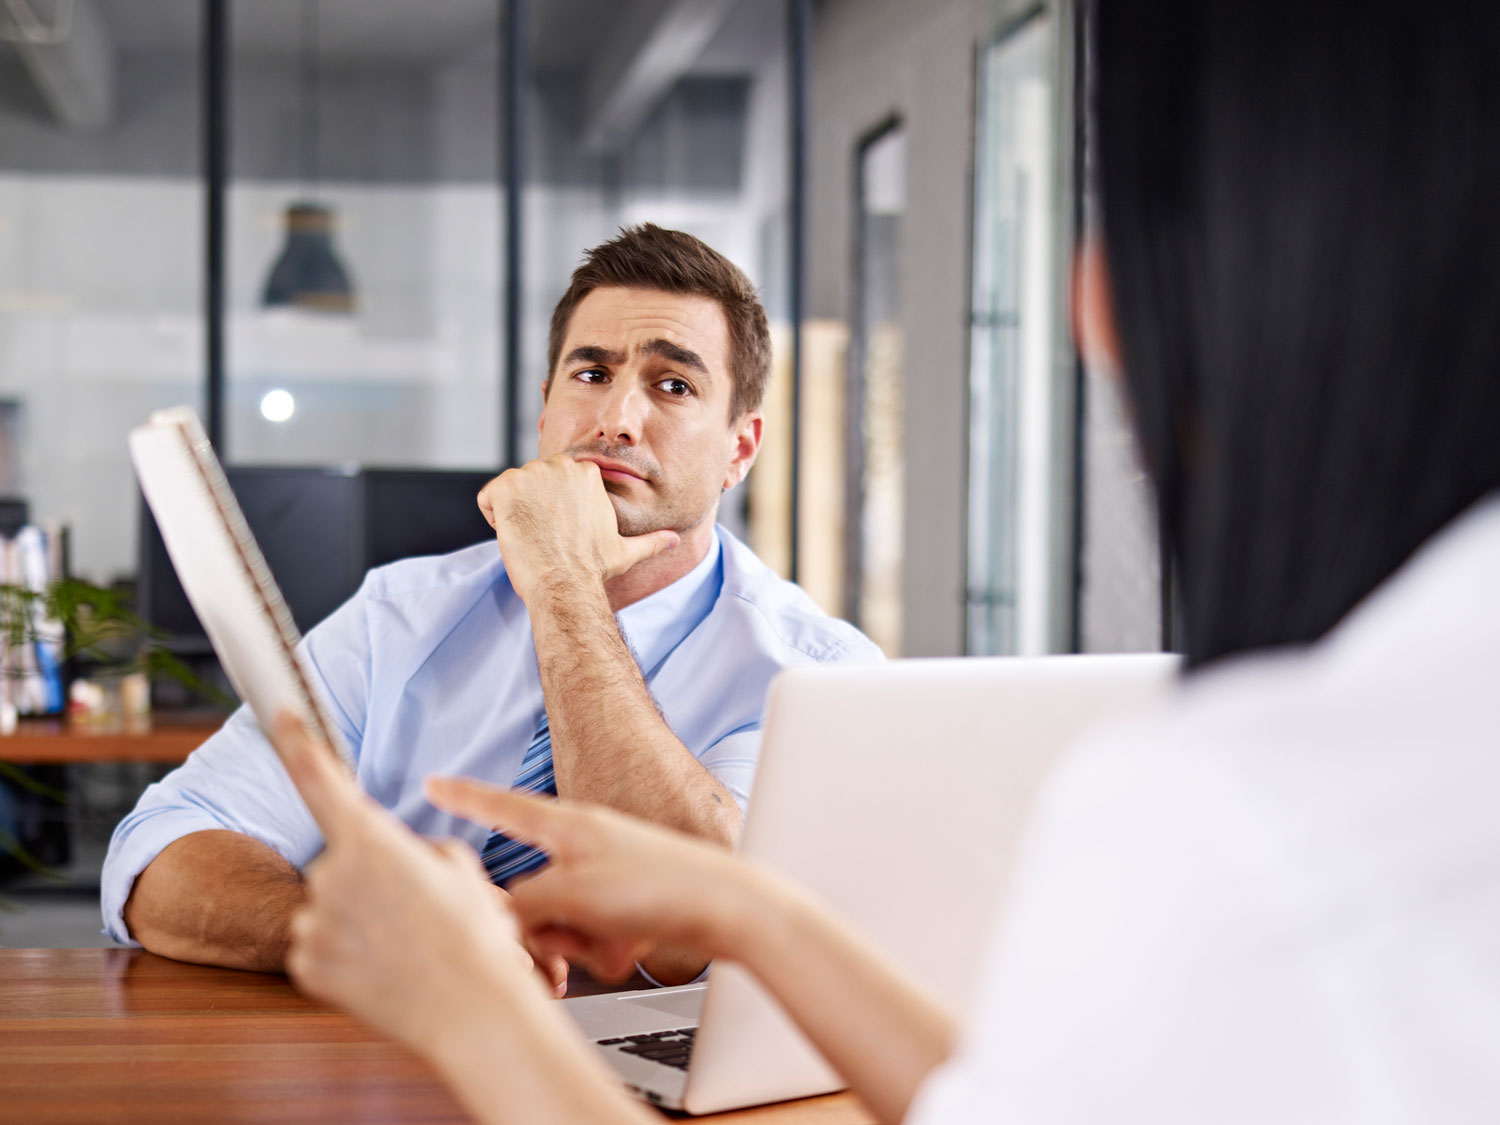 interview mistakes hiring managers make and how to avoid them